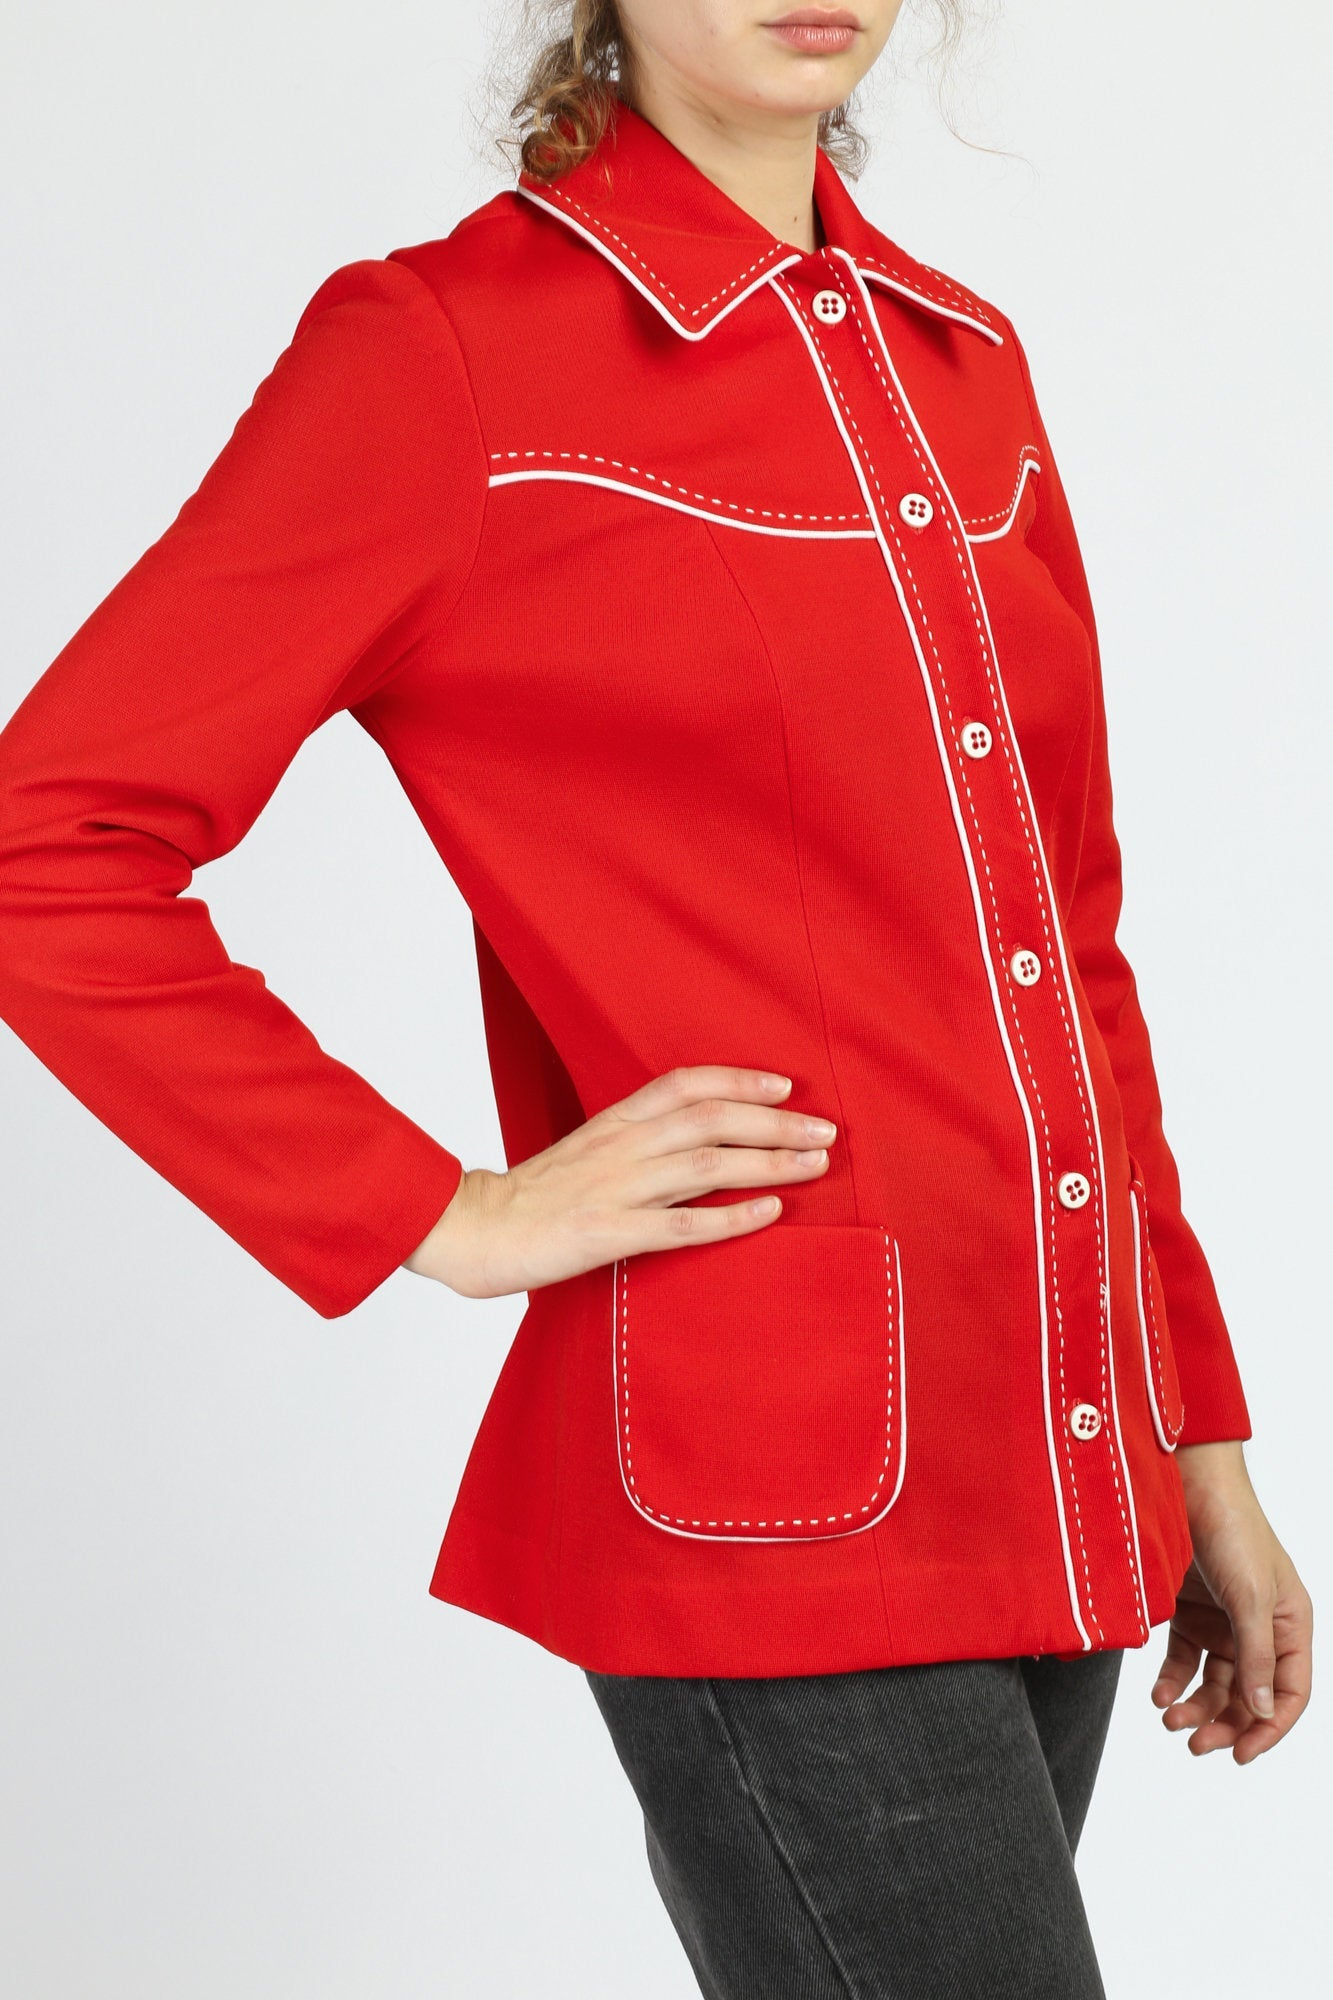 70s Mod Red Contrast Stitch Shirt - Medium